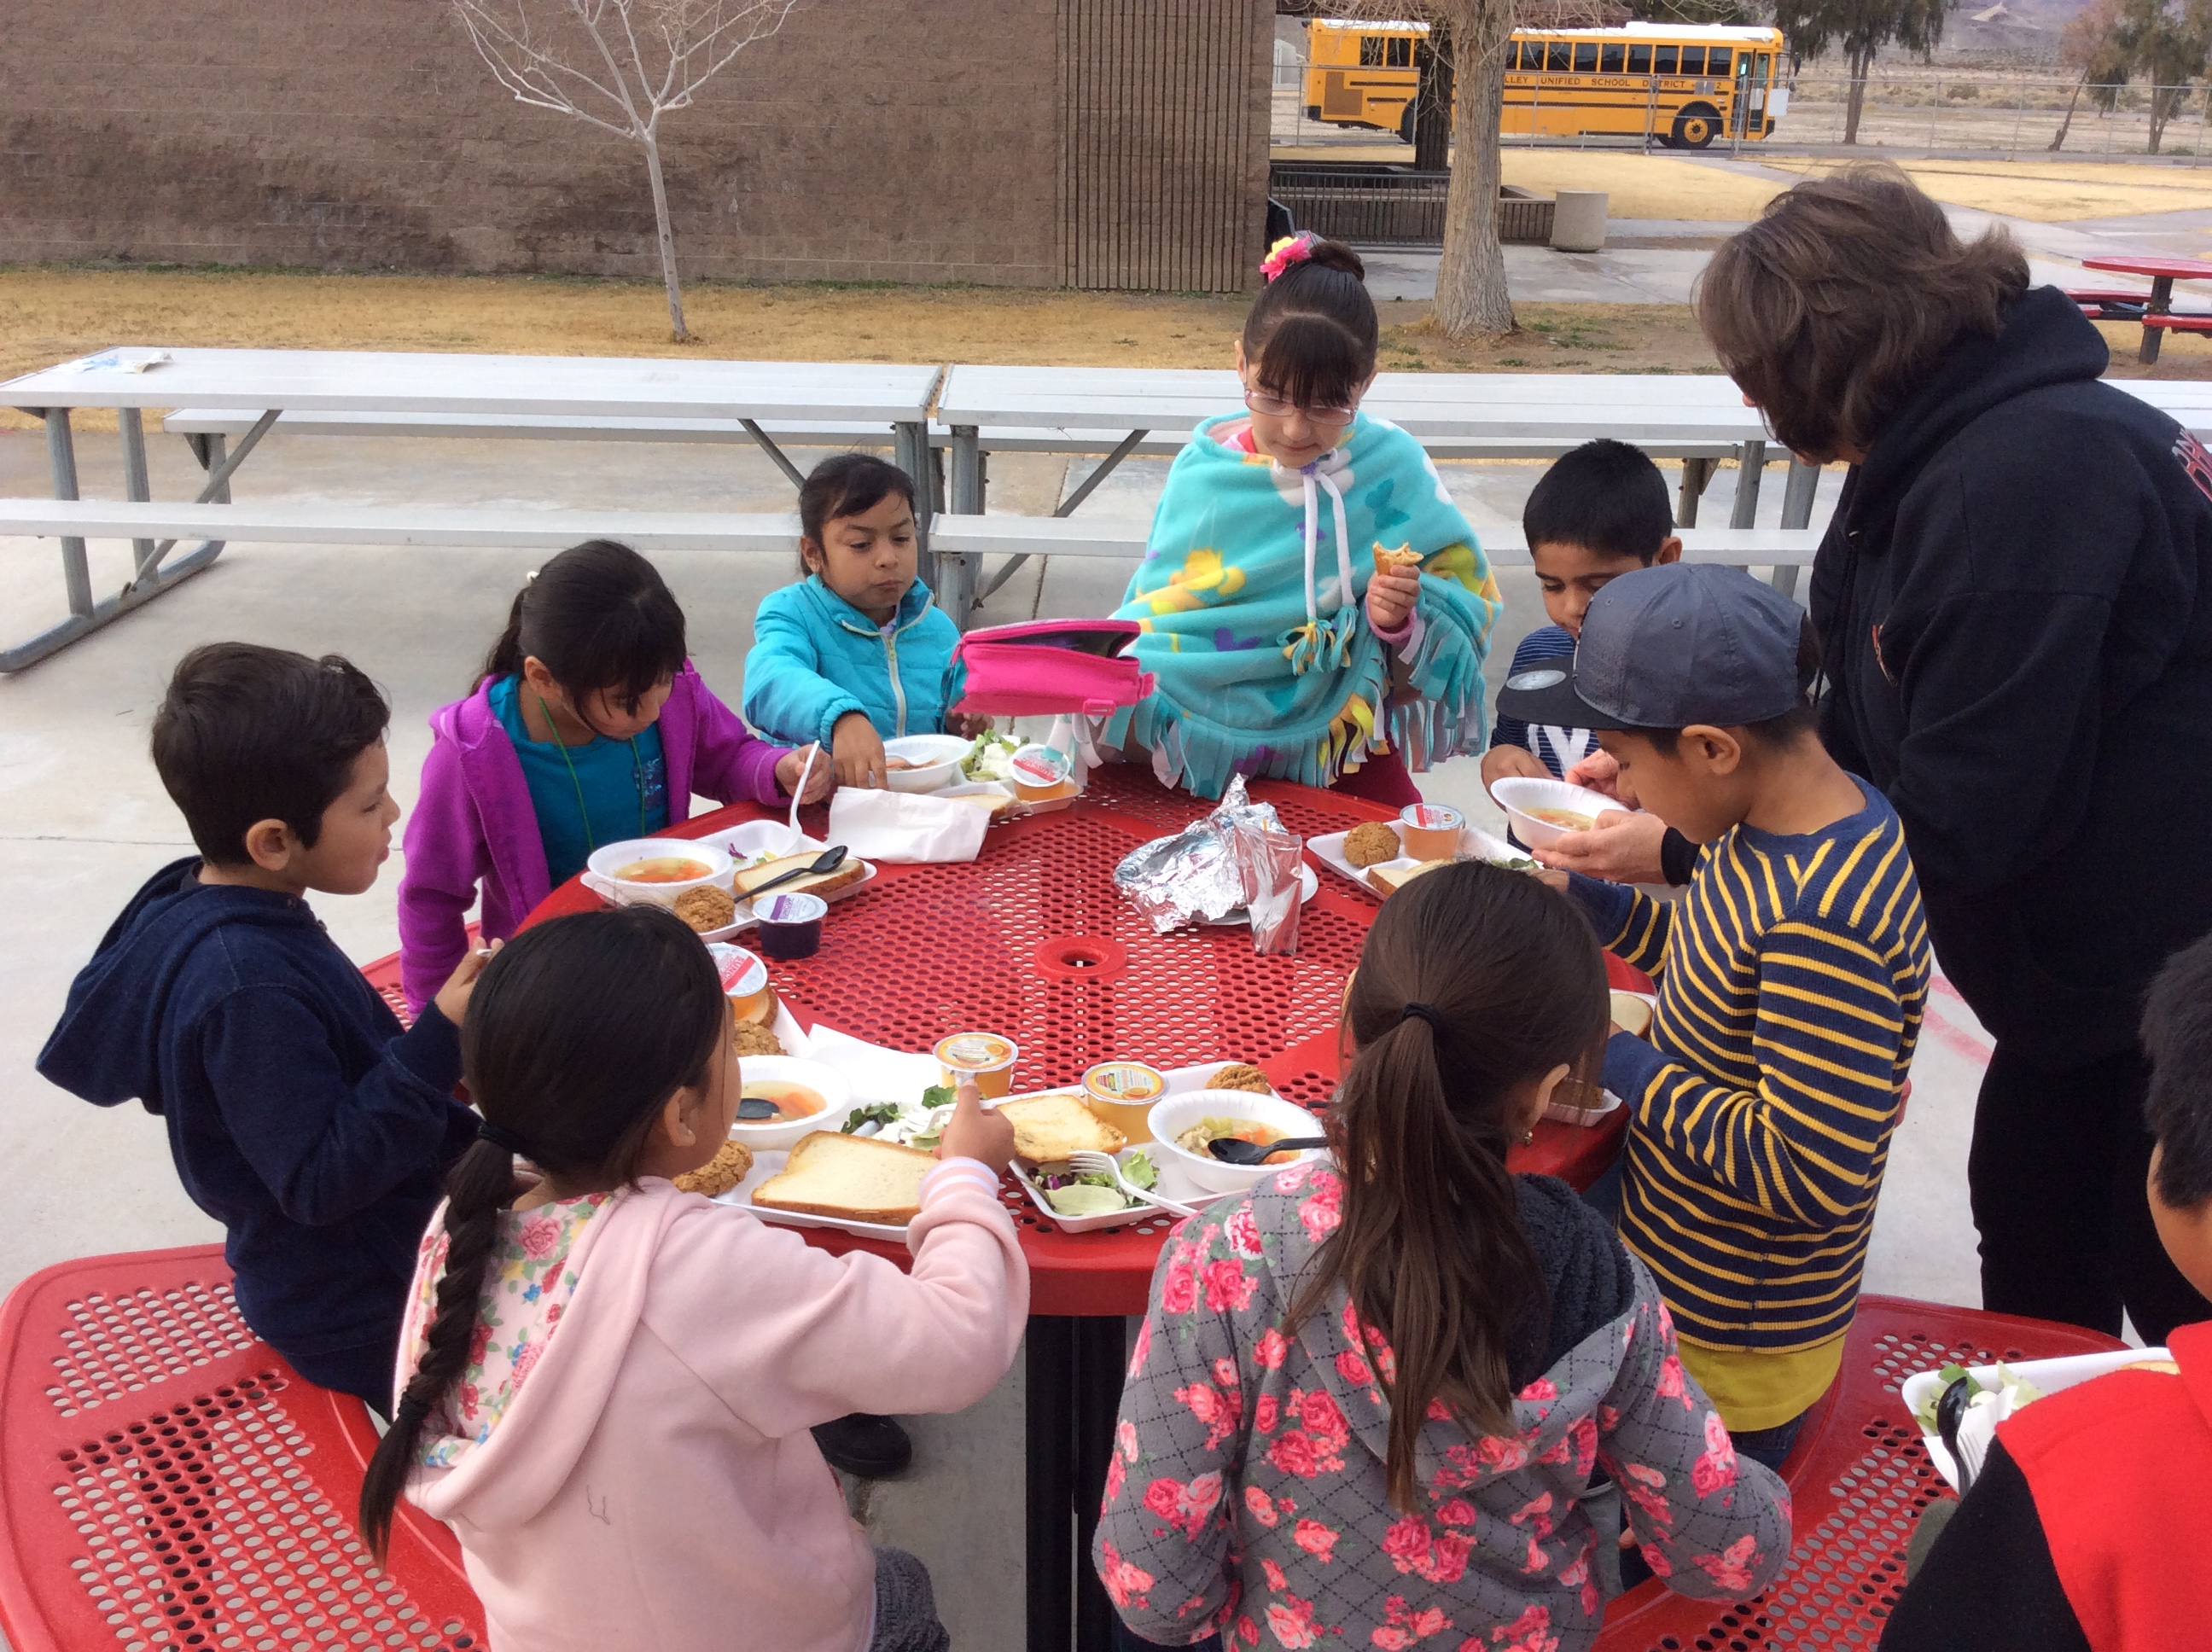 Superintendent and students having stone soup lunch.